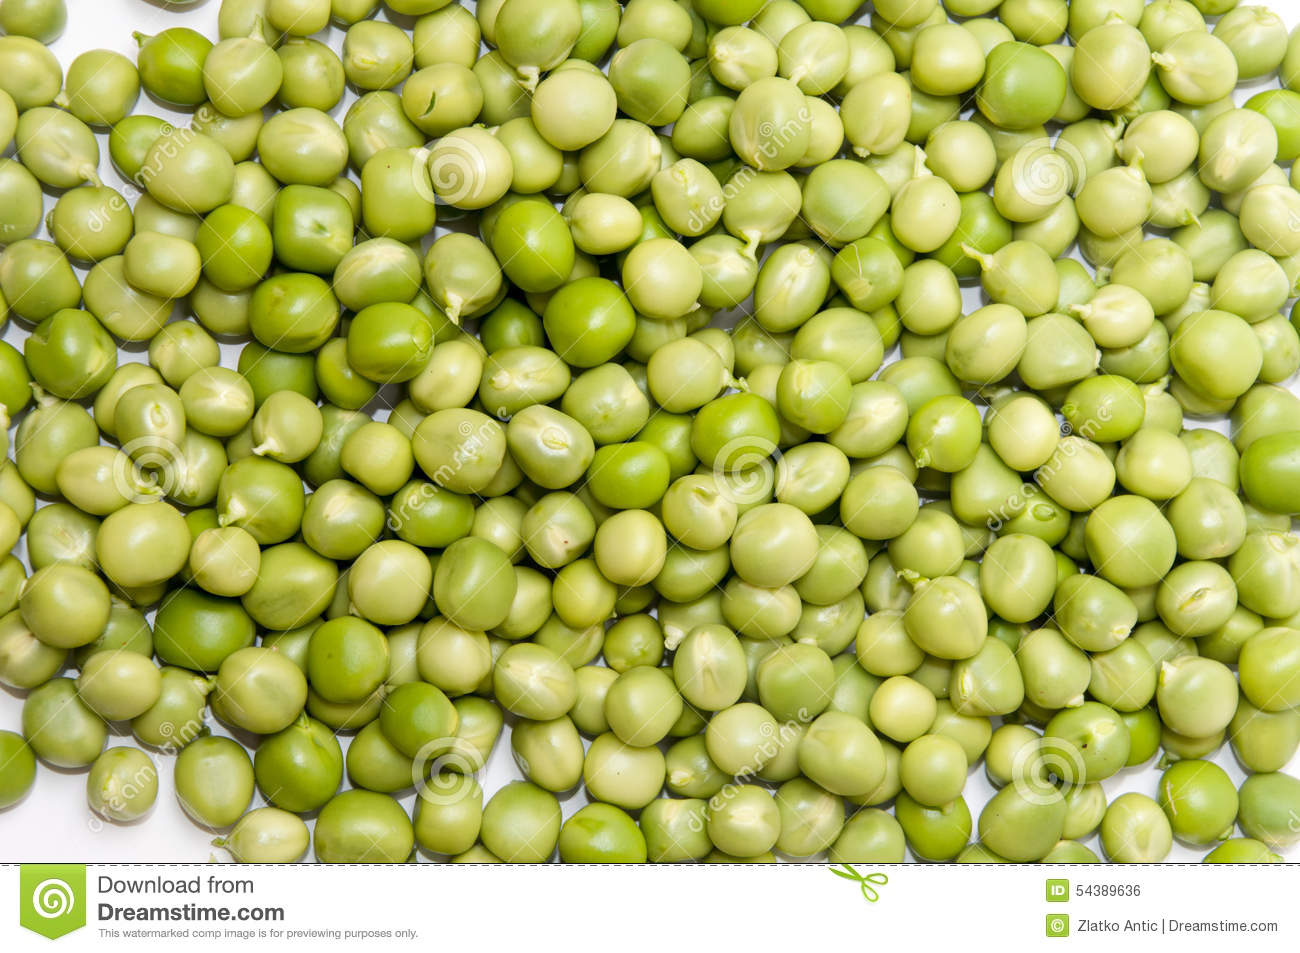 how to cook shelled peas